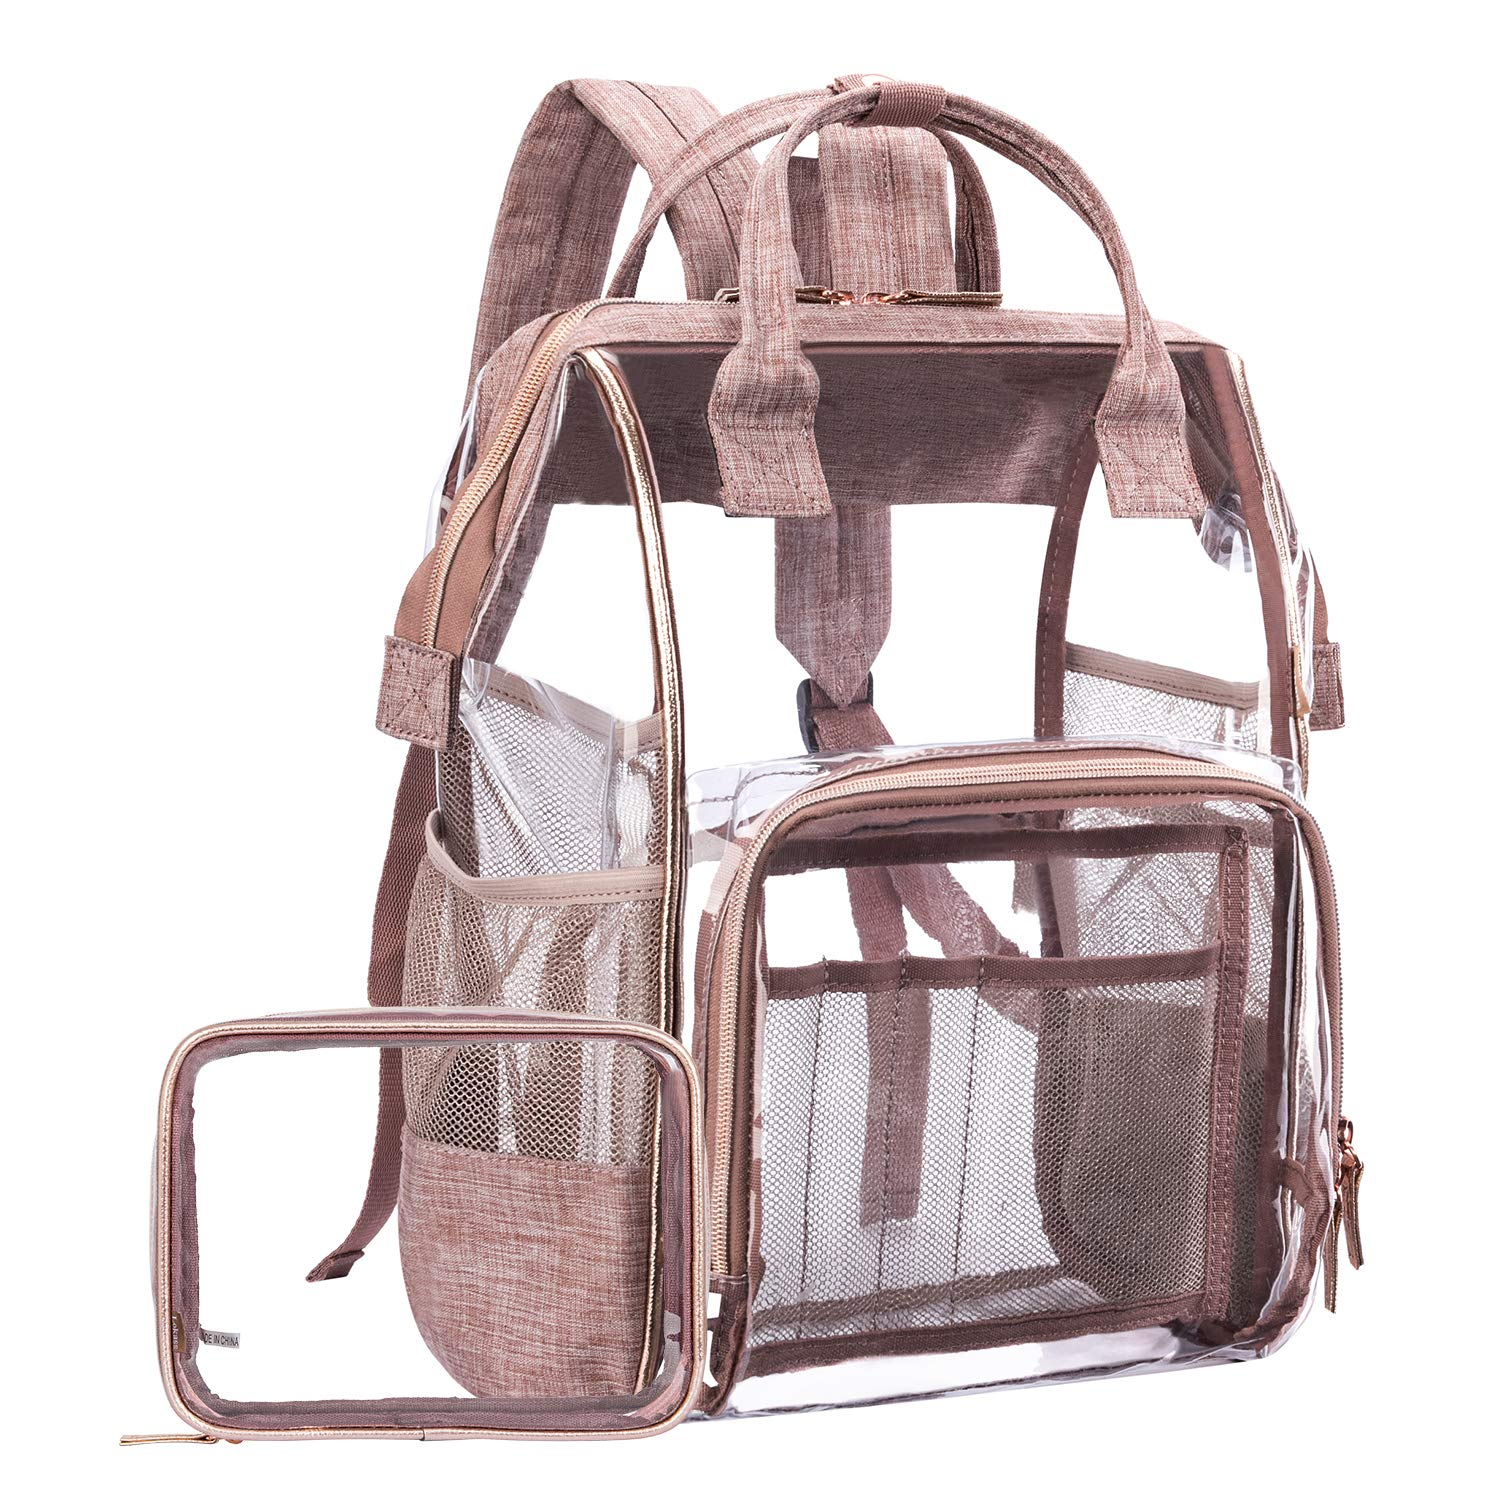 LOKASS Large Clear Backpack Transparent PVC Multi-Pockets School Backpacks/Outdoor Backpack Fit 15.6 Inch Laptop Safety Travel Rucksack with Rose Gold Trim-Adjustable Straps & Mesh Side(Rose Gold)